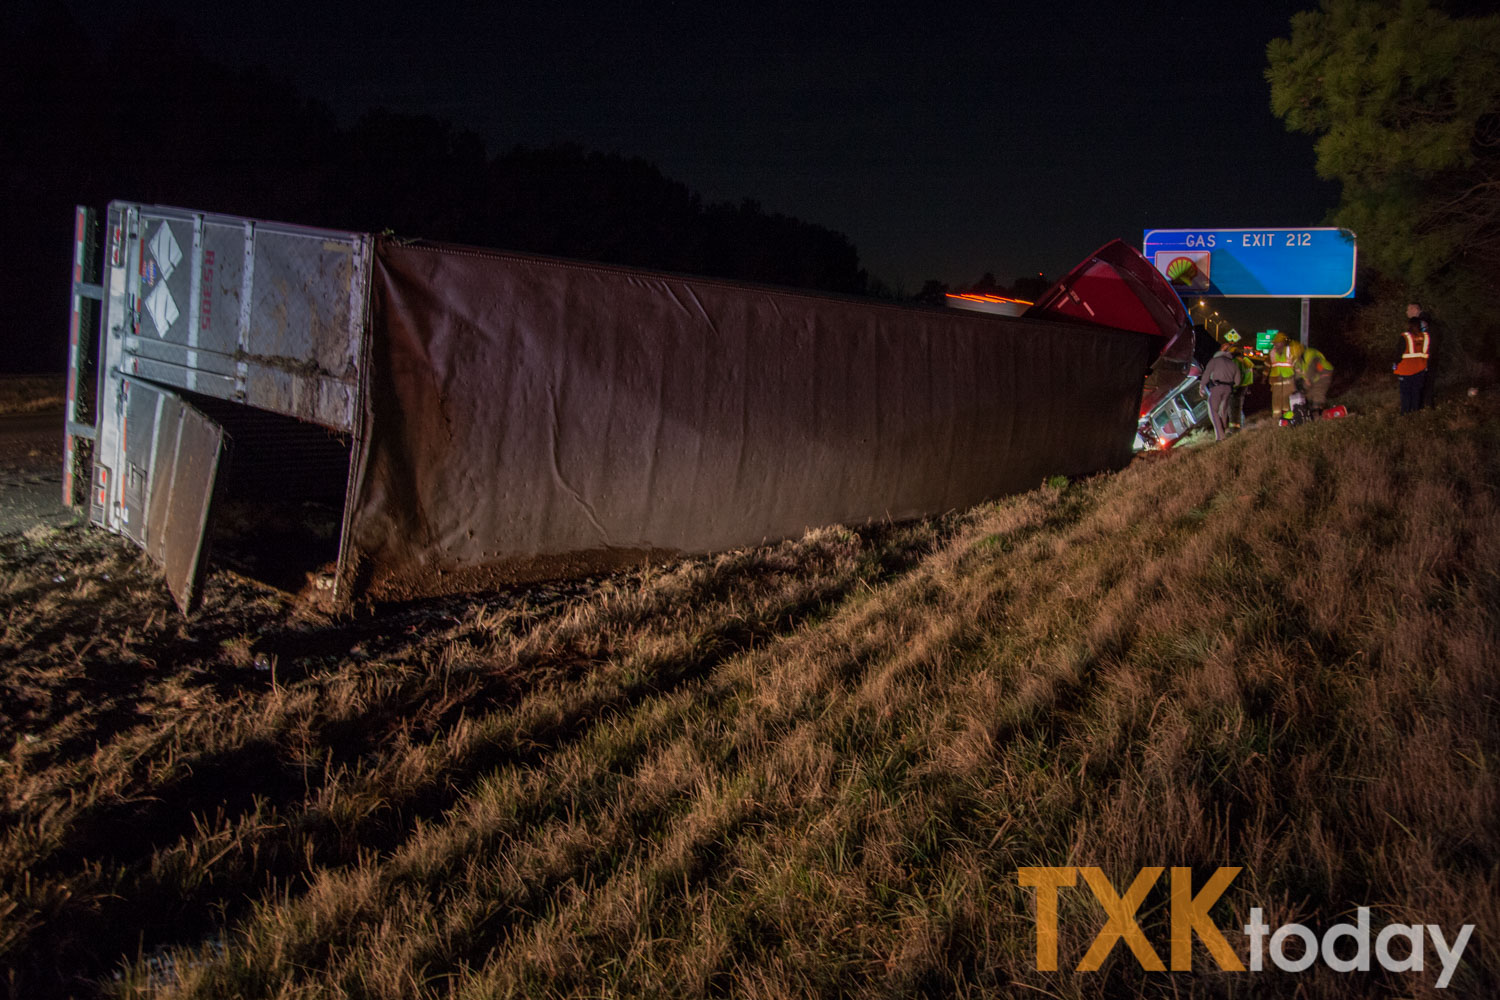 Semi-truck rollover accident on I-30 at Leary | Texarkana Today